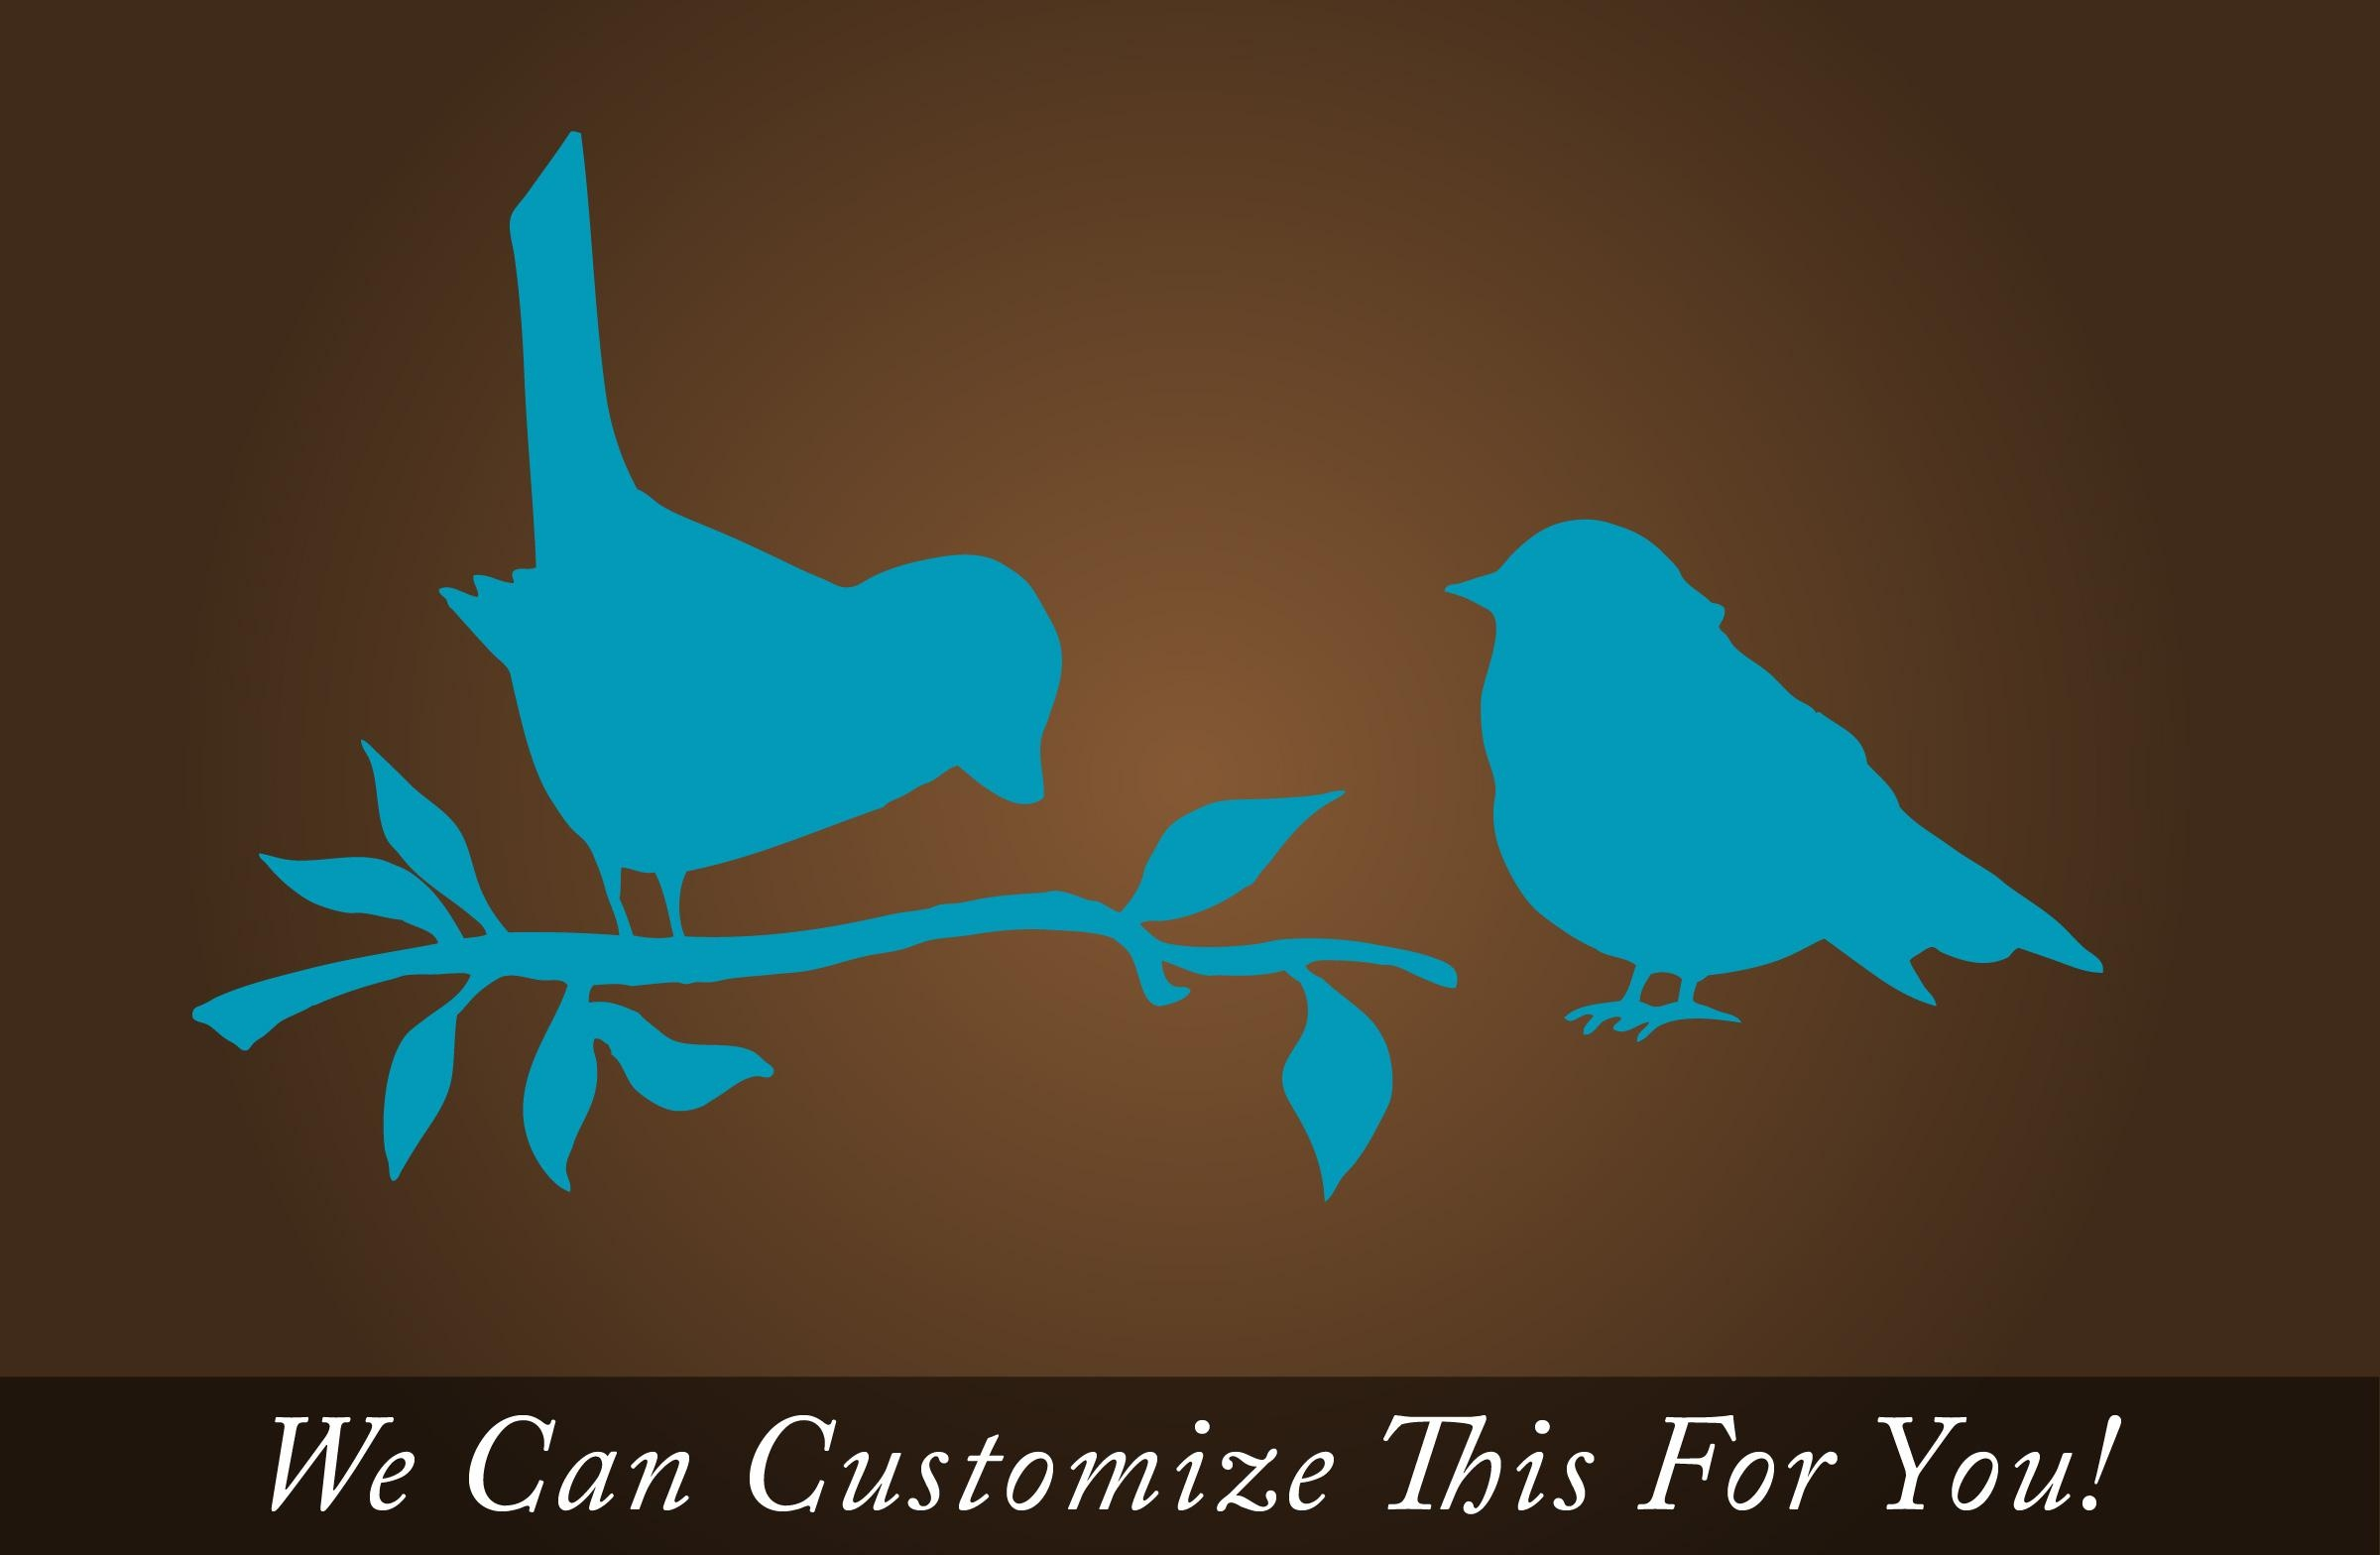 Pair Of Sparrow Birds On A Tree Branch – A Wall Decor Vinyl Decal Pertaining To Turquoise And Brown Wall Art (Image 13 of 20)